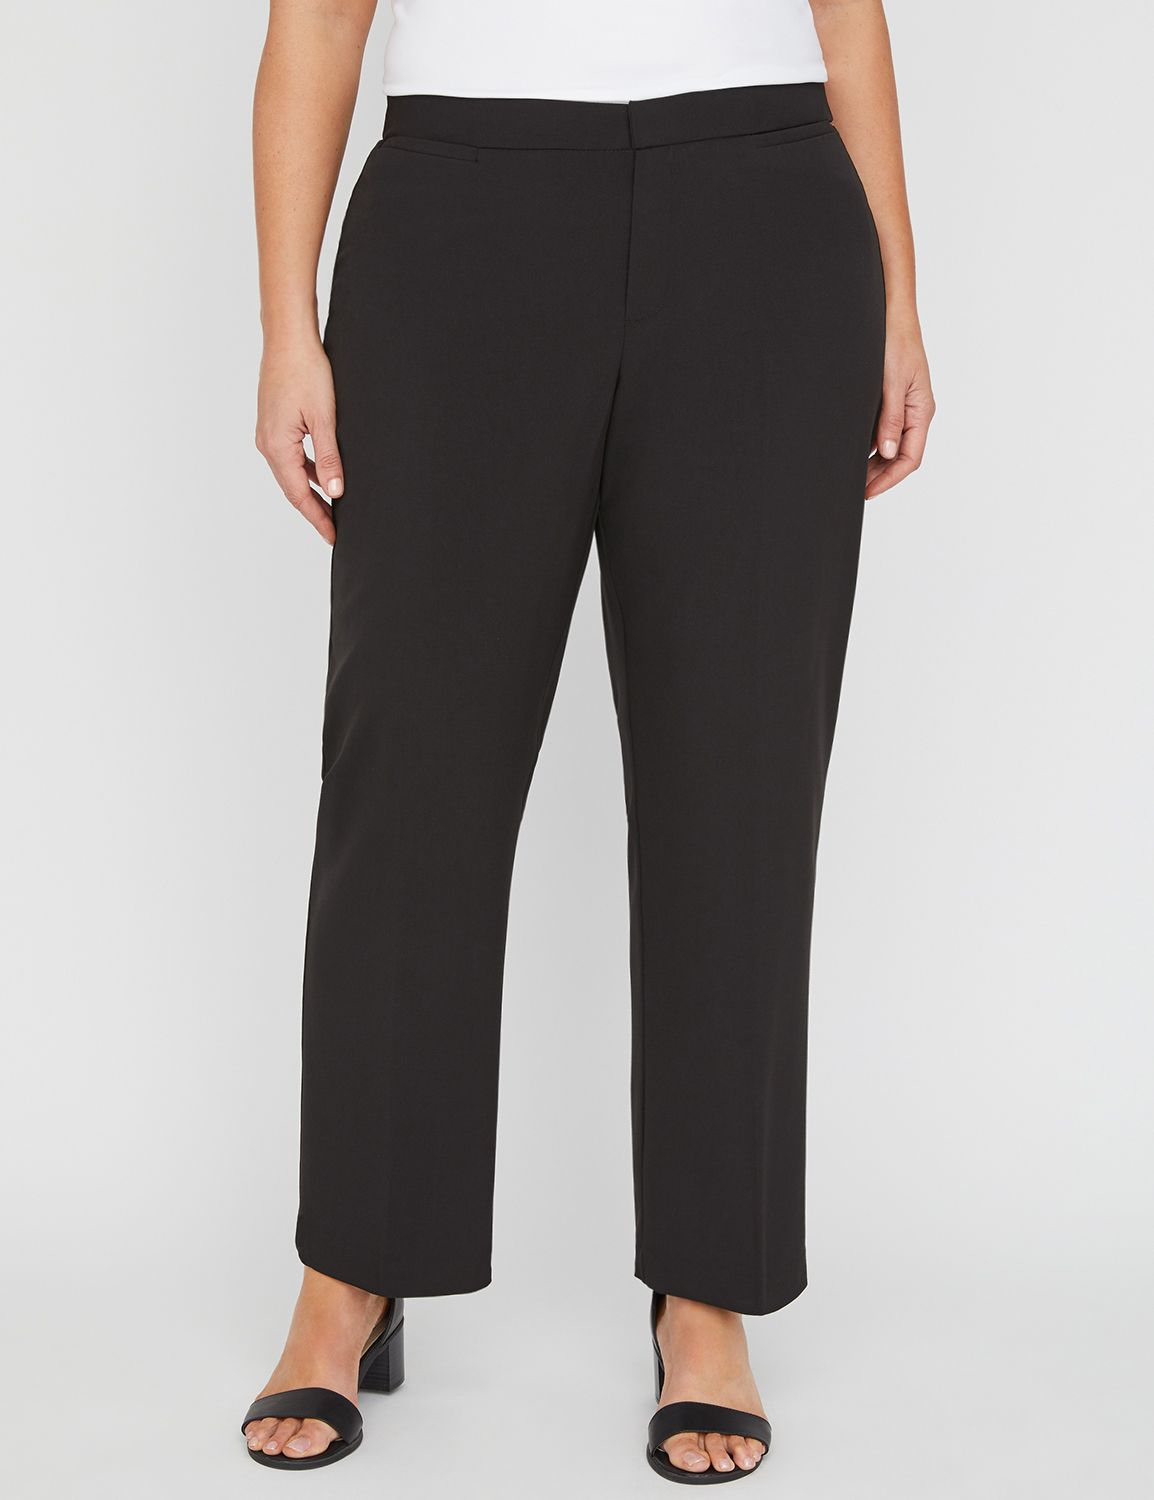 Right Fit Pant (Moderately Curvy) Right Fit Pant (Moderately Curvy) MP-300009911